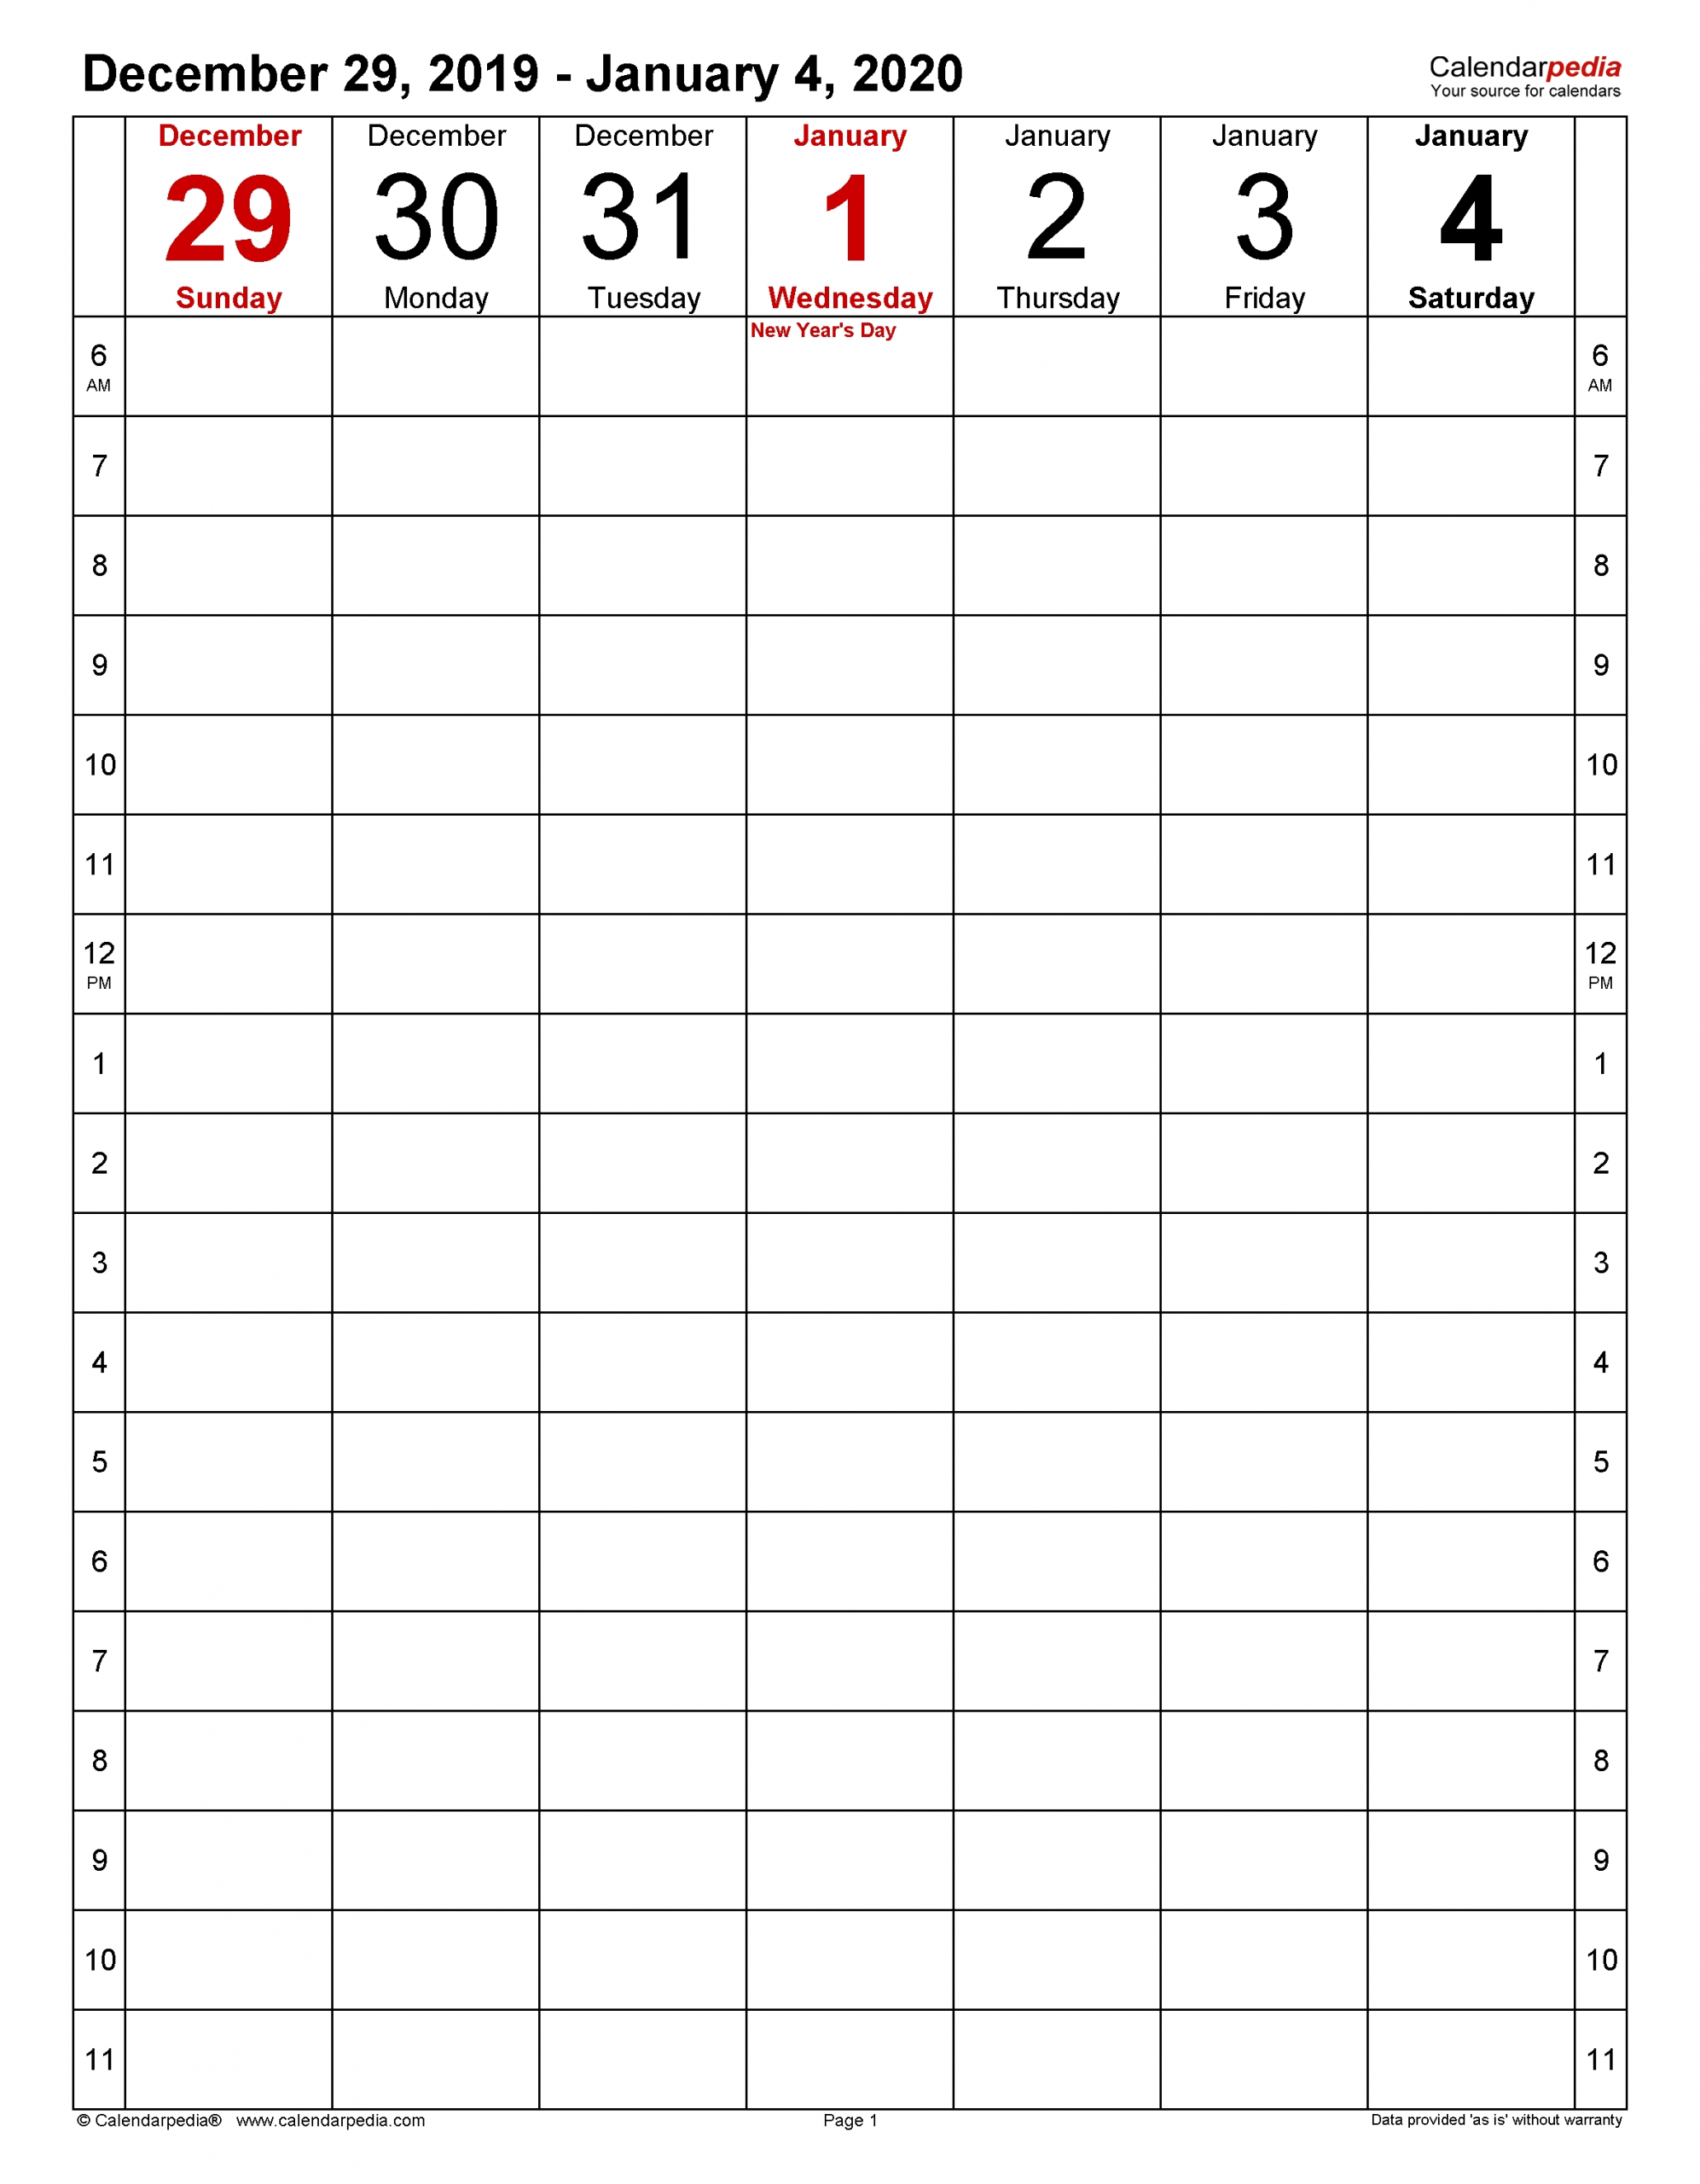 Weekly Calendars 2020 For Pdf - 12 Free Printable Templates throughout 2019 Printable Weekly Nfl Schedule Pdf